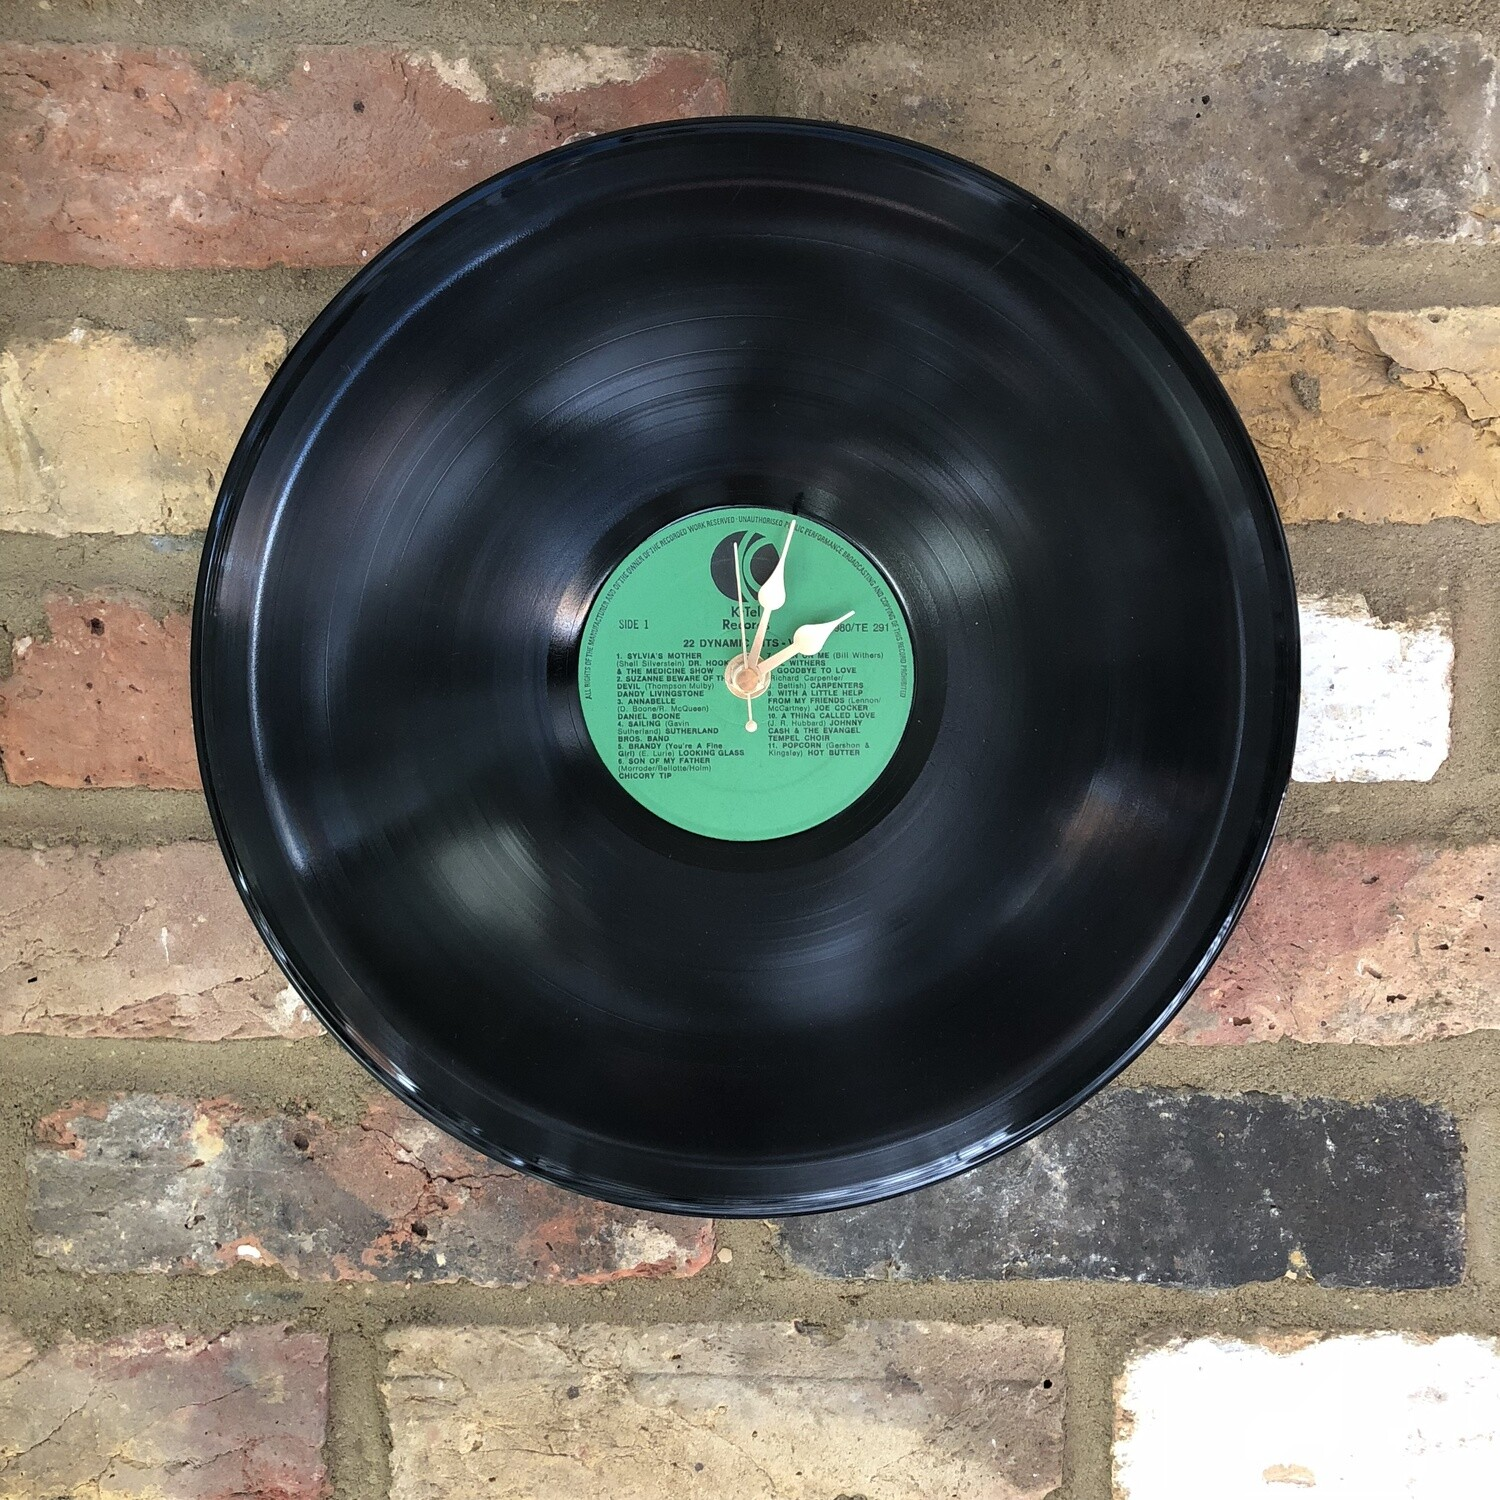 """12"""" Vinyl LP Clock- Stretched - '22 Dynamic Hits' - Featuring Chicory Tip, Joe Cocker and Johnny Cash. K-tel Records."""